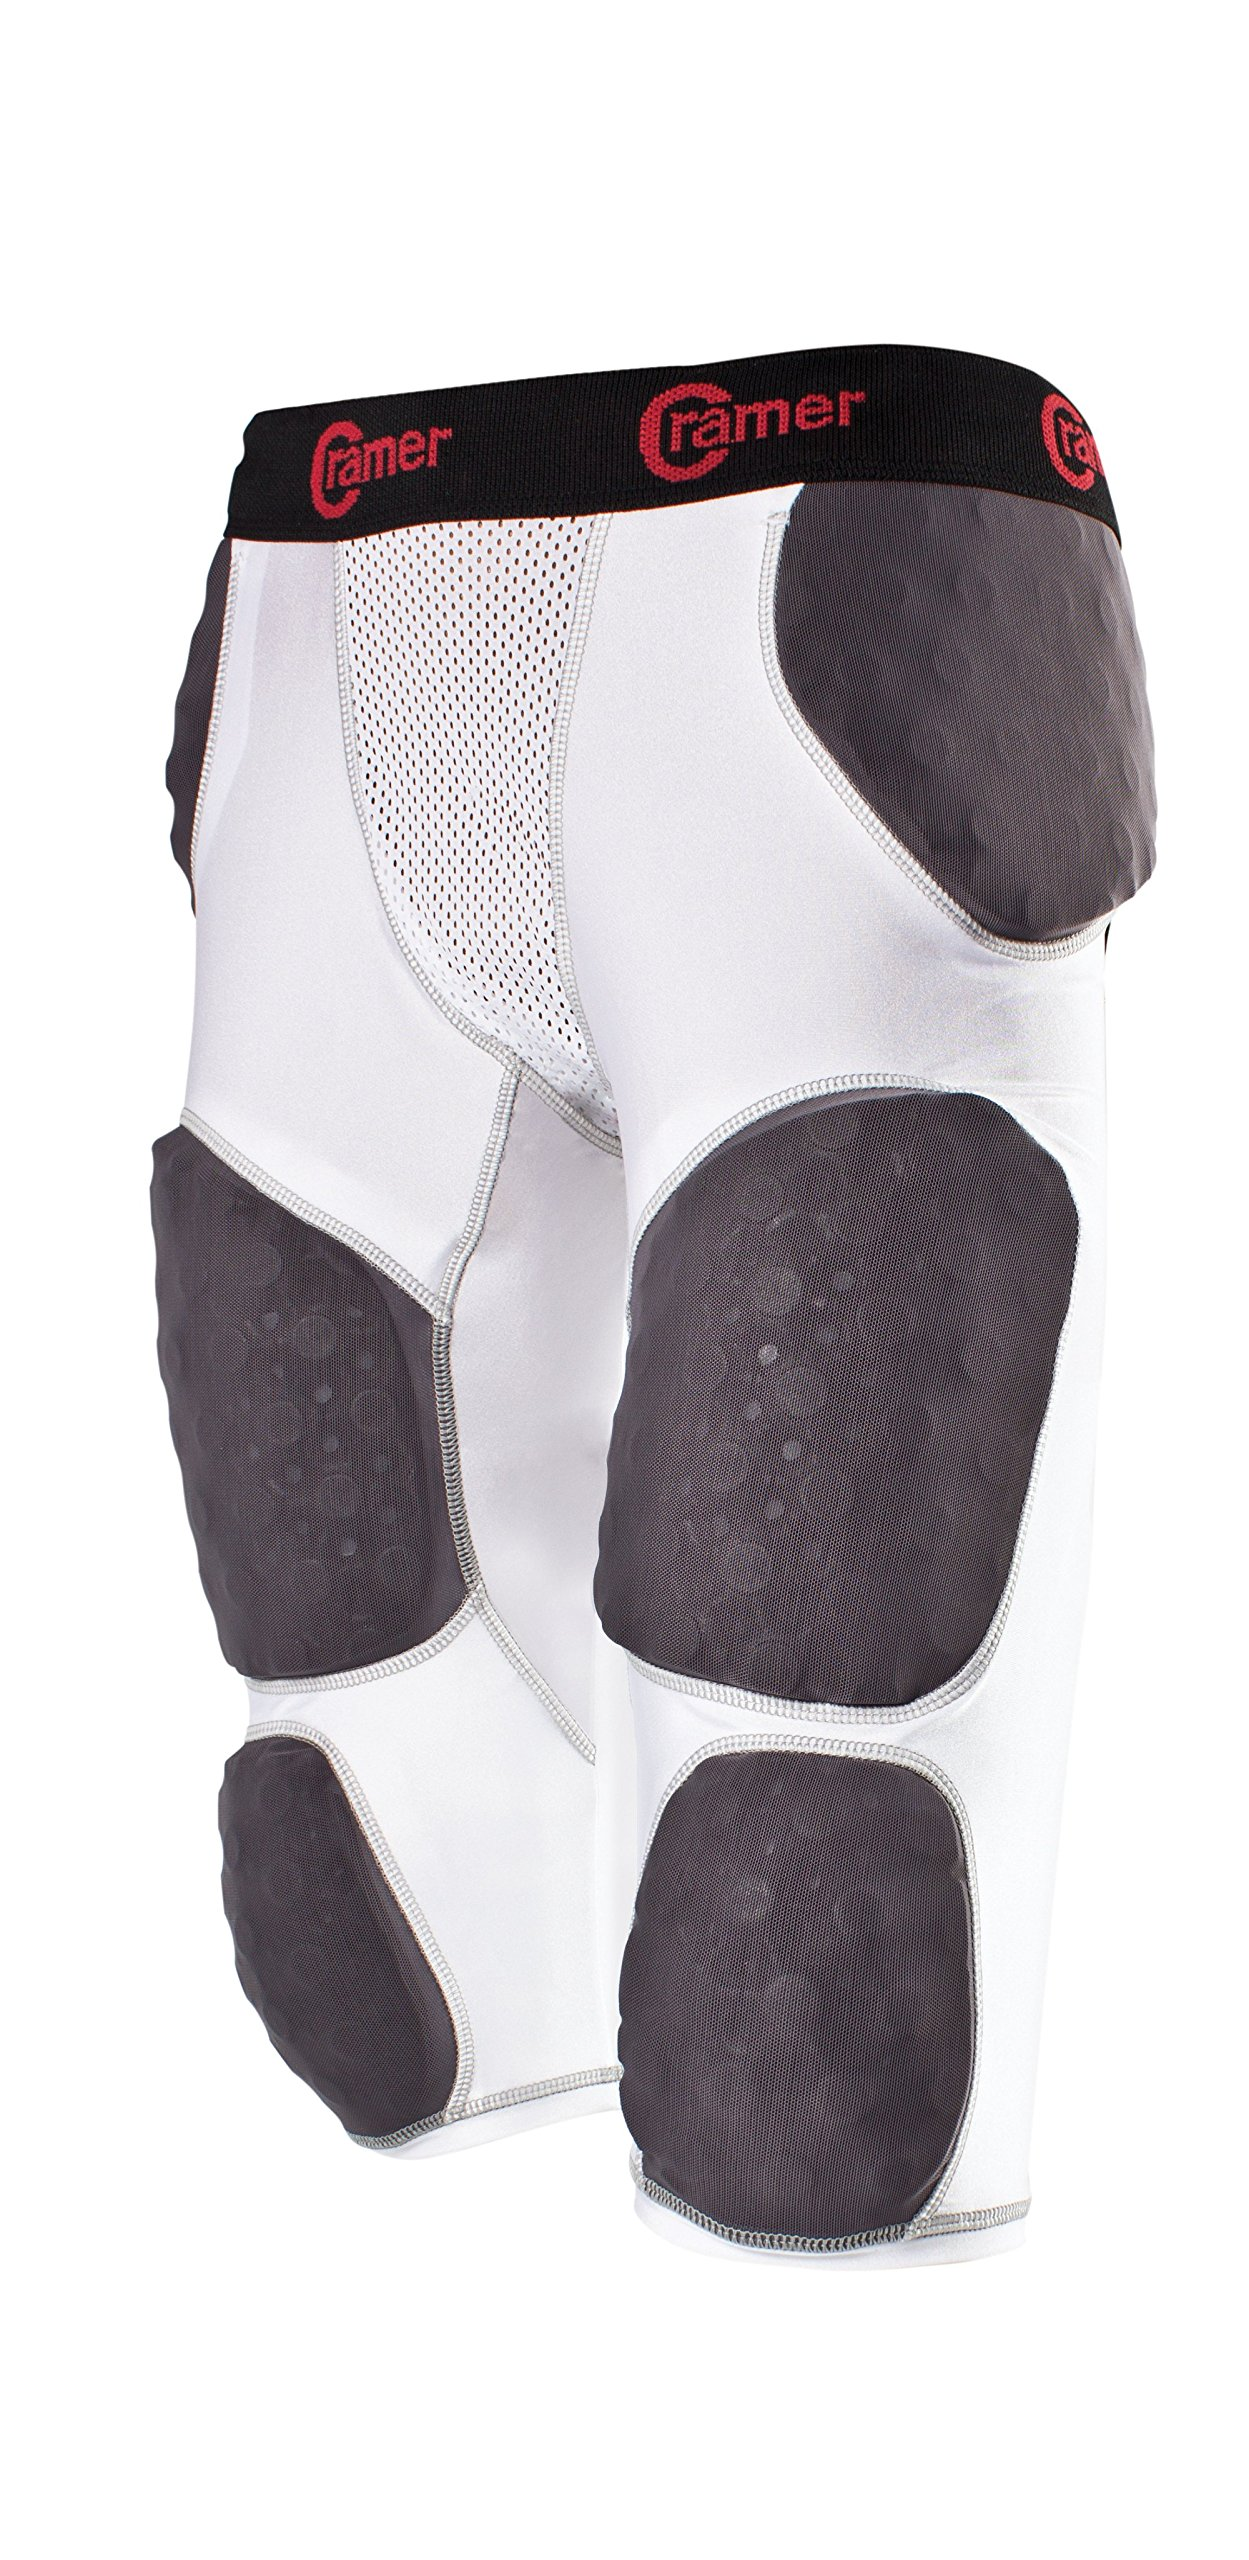 Cramer Lightning 7 Pad Football Girdle With Integrated Hip, Tailbone and Thigh Pads, Anti-Bacterial and Moisture-Wicking Fabric, Great Protection Without Impeding Athletic Performance, White, X-Large by Cramer (Image #1)